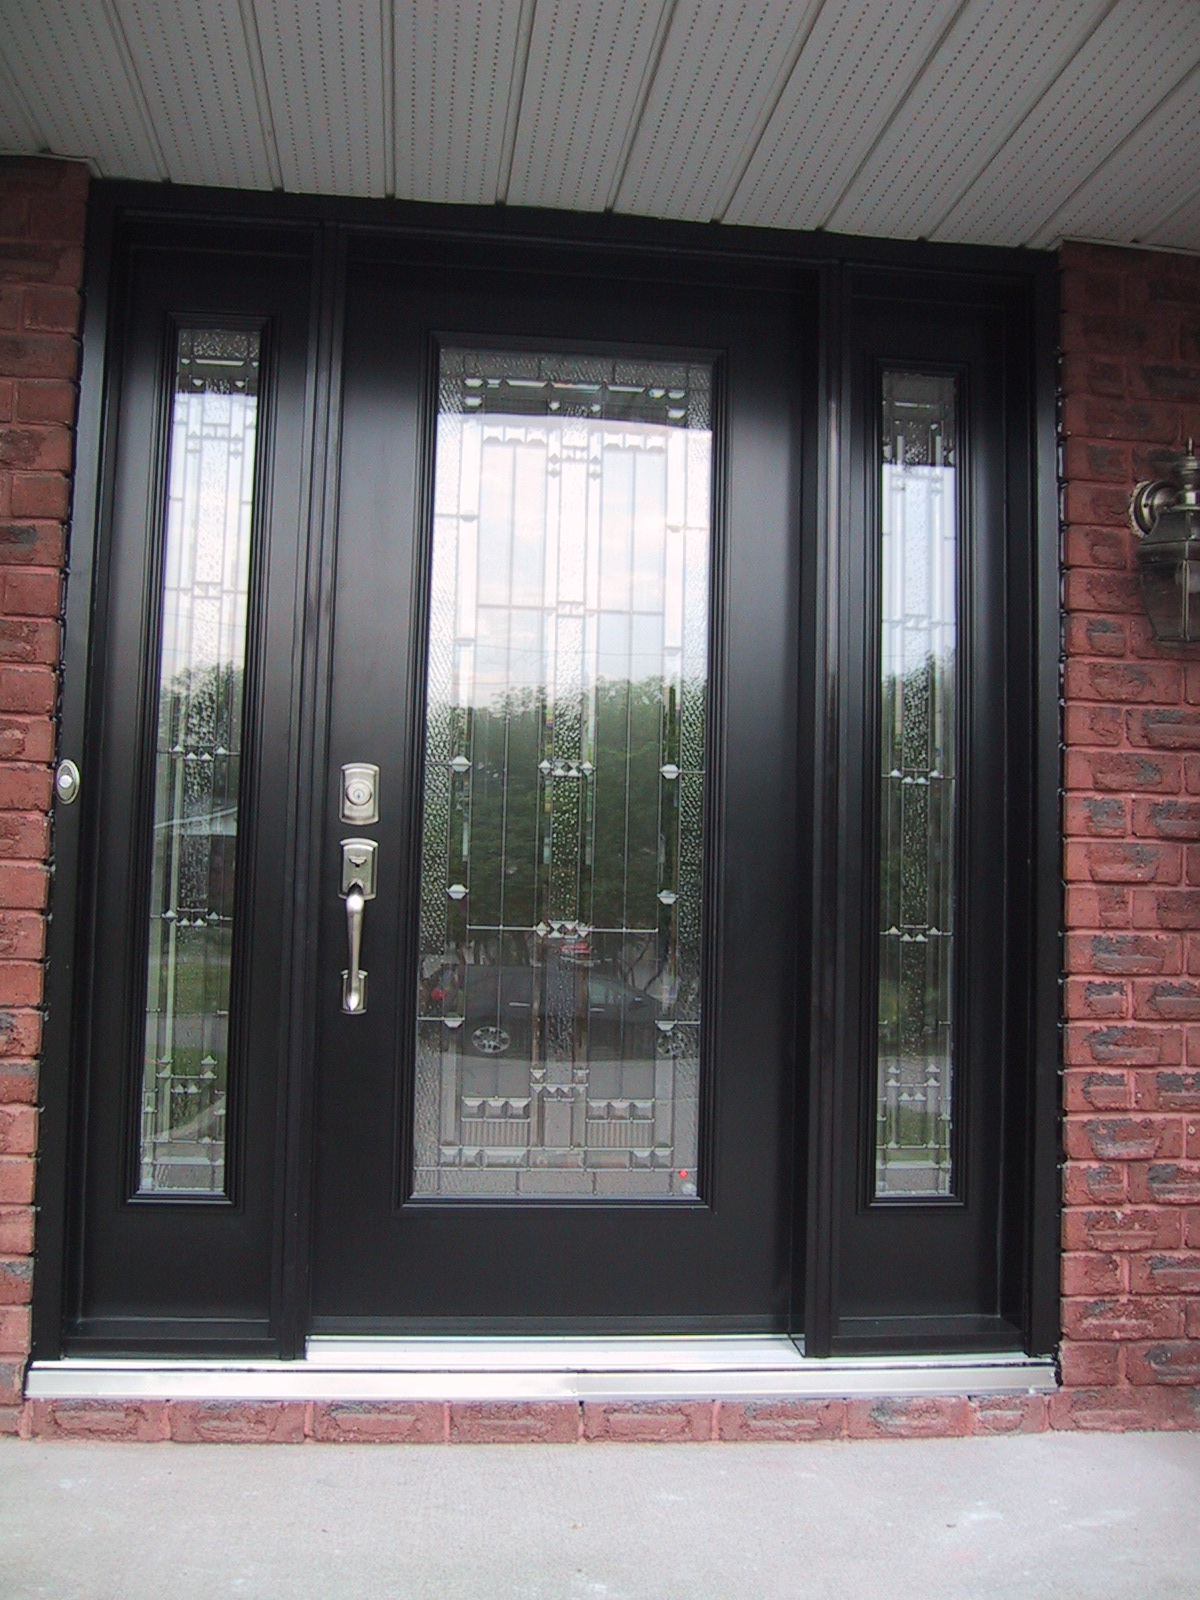 Decorative front doors with sidelights are accomplished with second doors